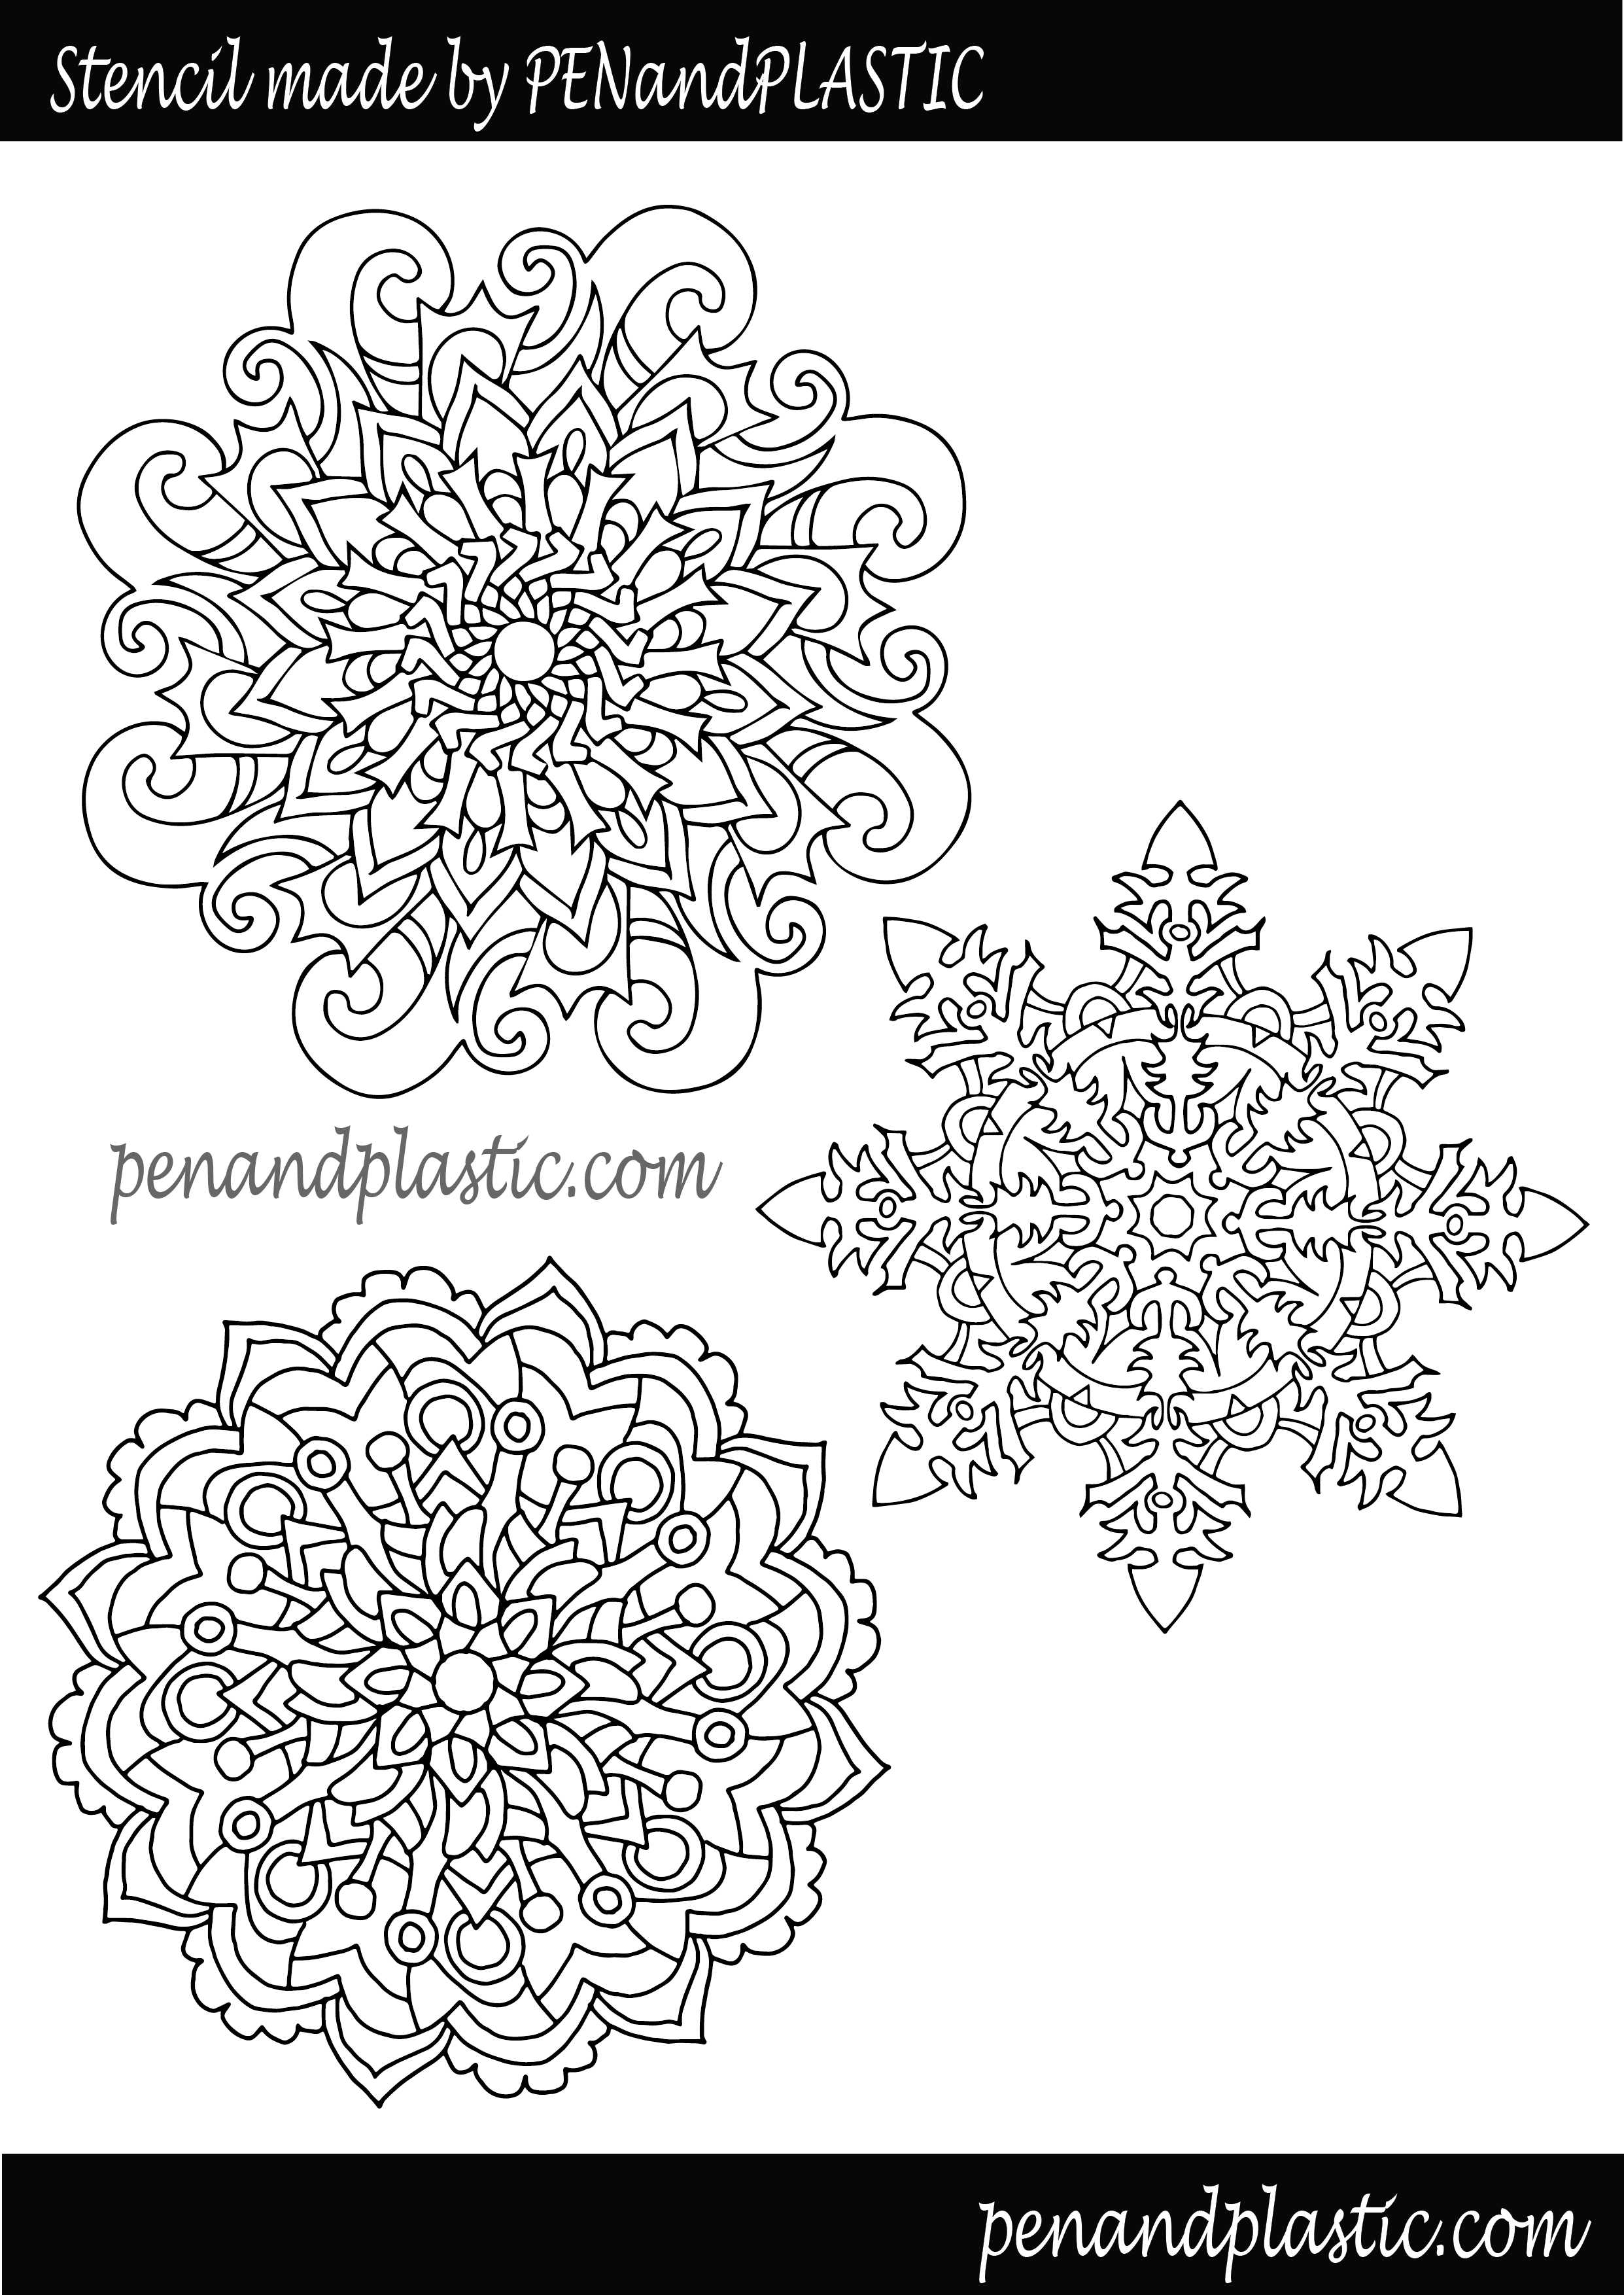 image about 3doodler Stencils Printable referred to as 3D Pen Stencils and Templates - No cost Downloads Inside of